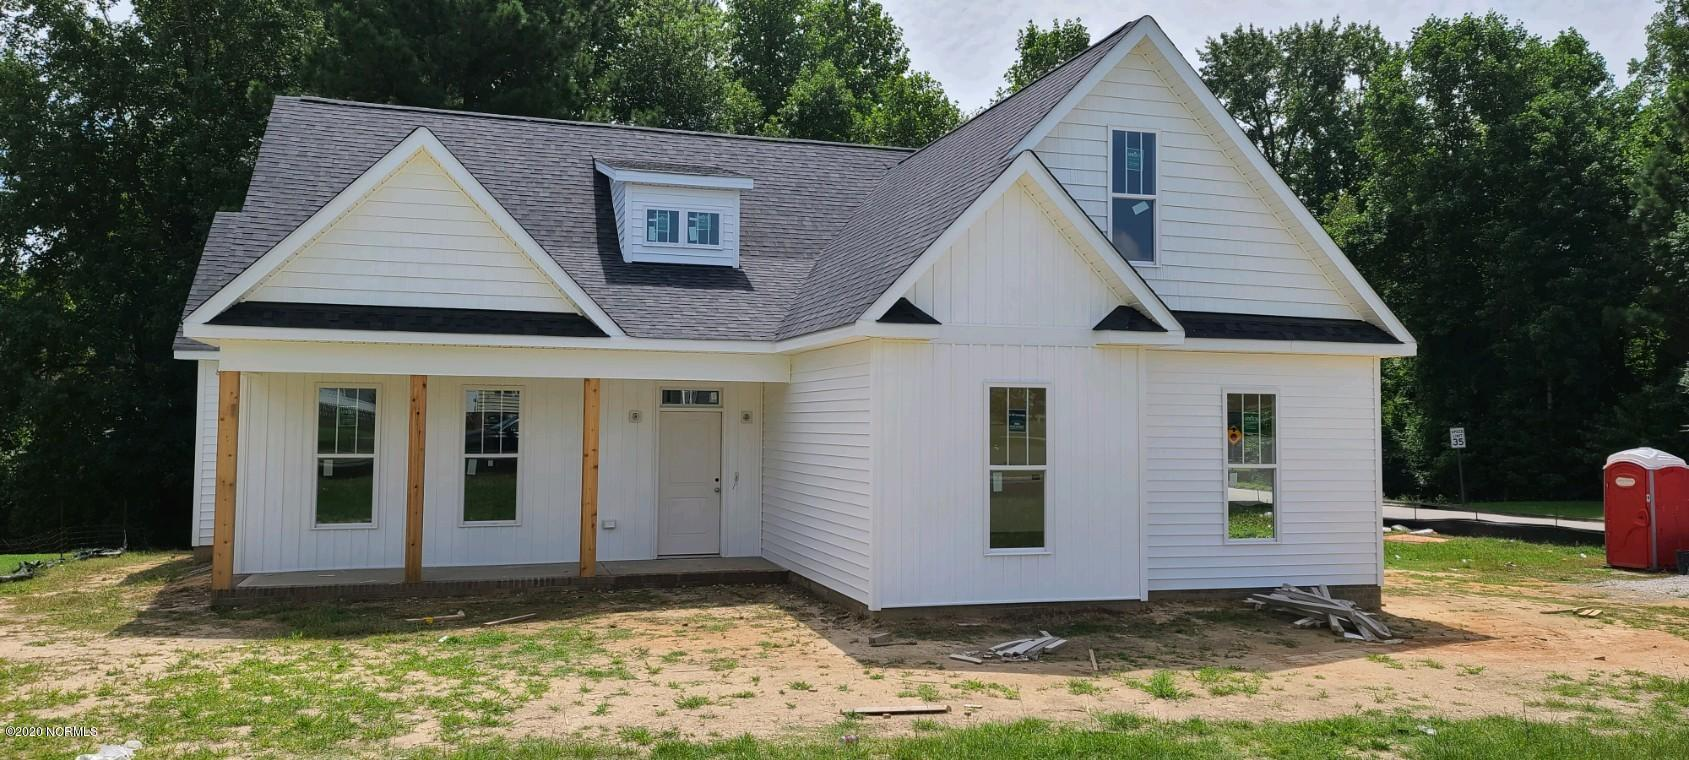 3100 Westshire Drive, Wilson, North Carolina 27896, 3 Bedrooms Bedrooms, 7 Rooms Rooms,3 BathroomsBathrooms,Single family residence,For sale,Westshire,100219567